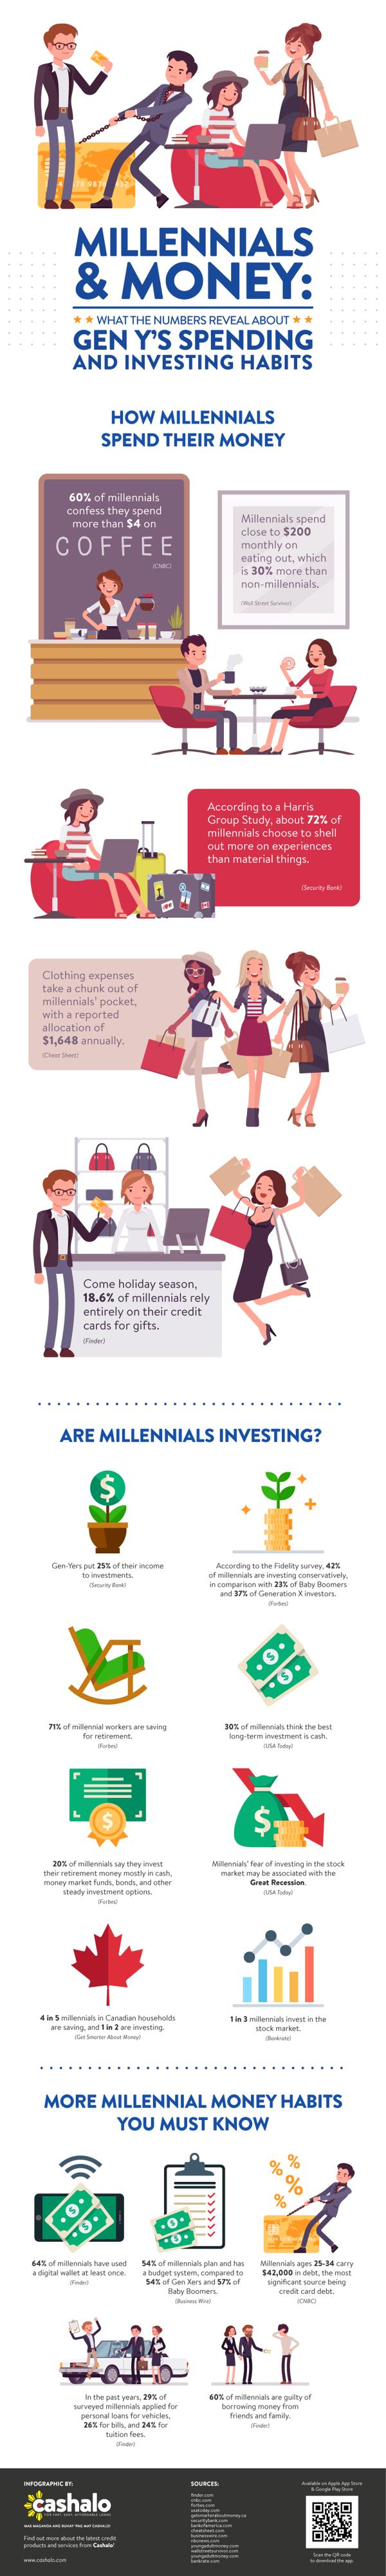 Millennials and Money: What the Numbers Reveal About Gen Y's Spending and Investing Habits 1